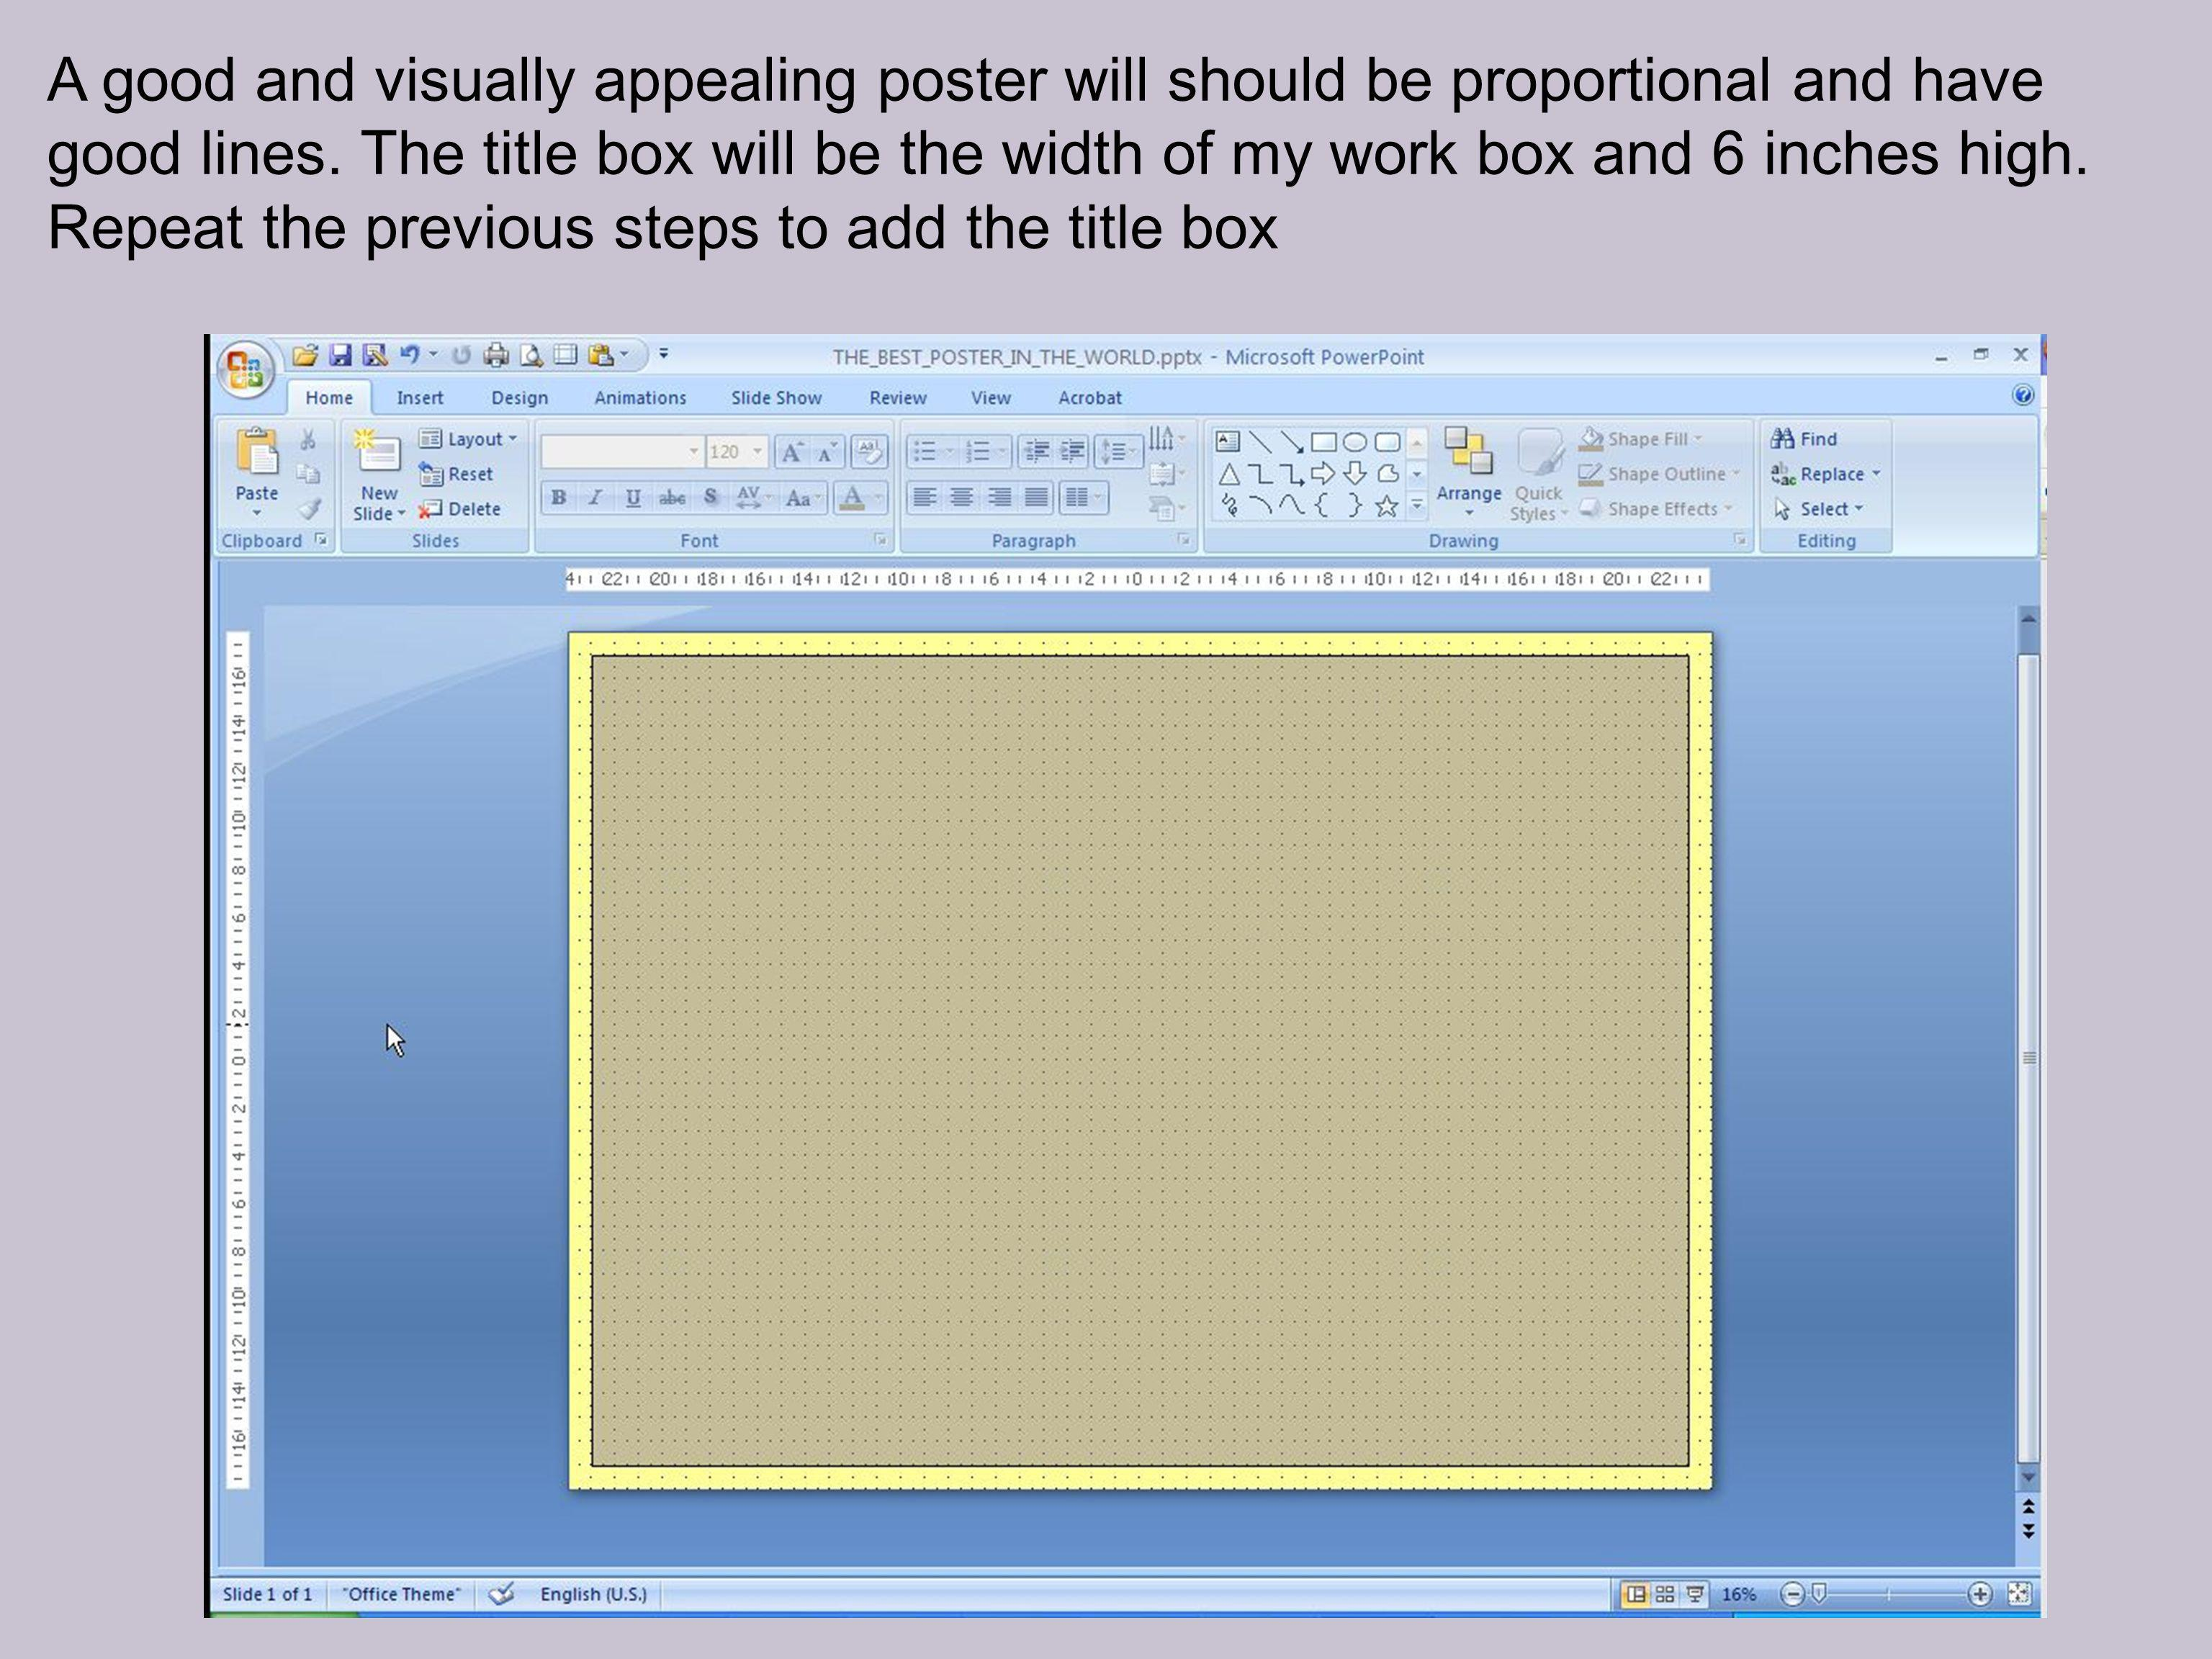 A good and visually appealing poster will should be proportional and have good lines.